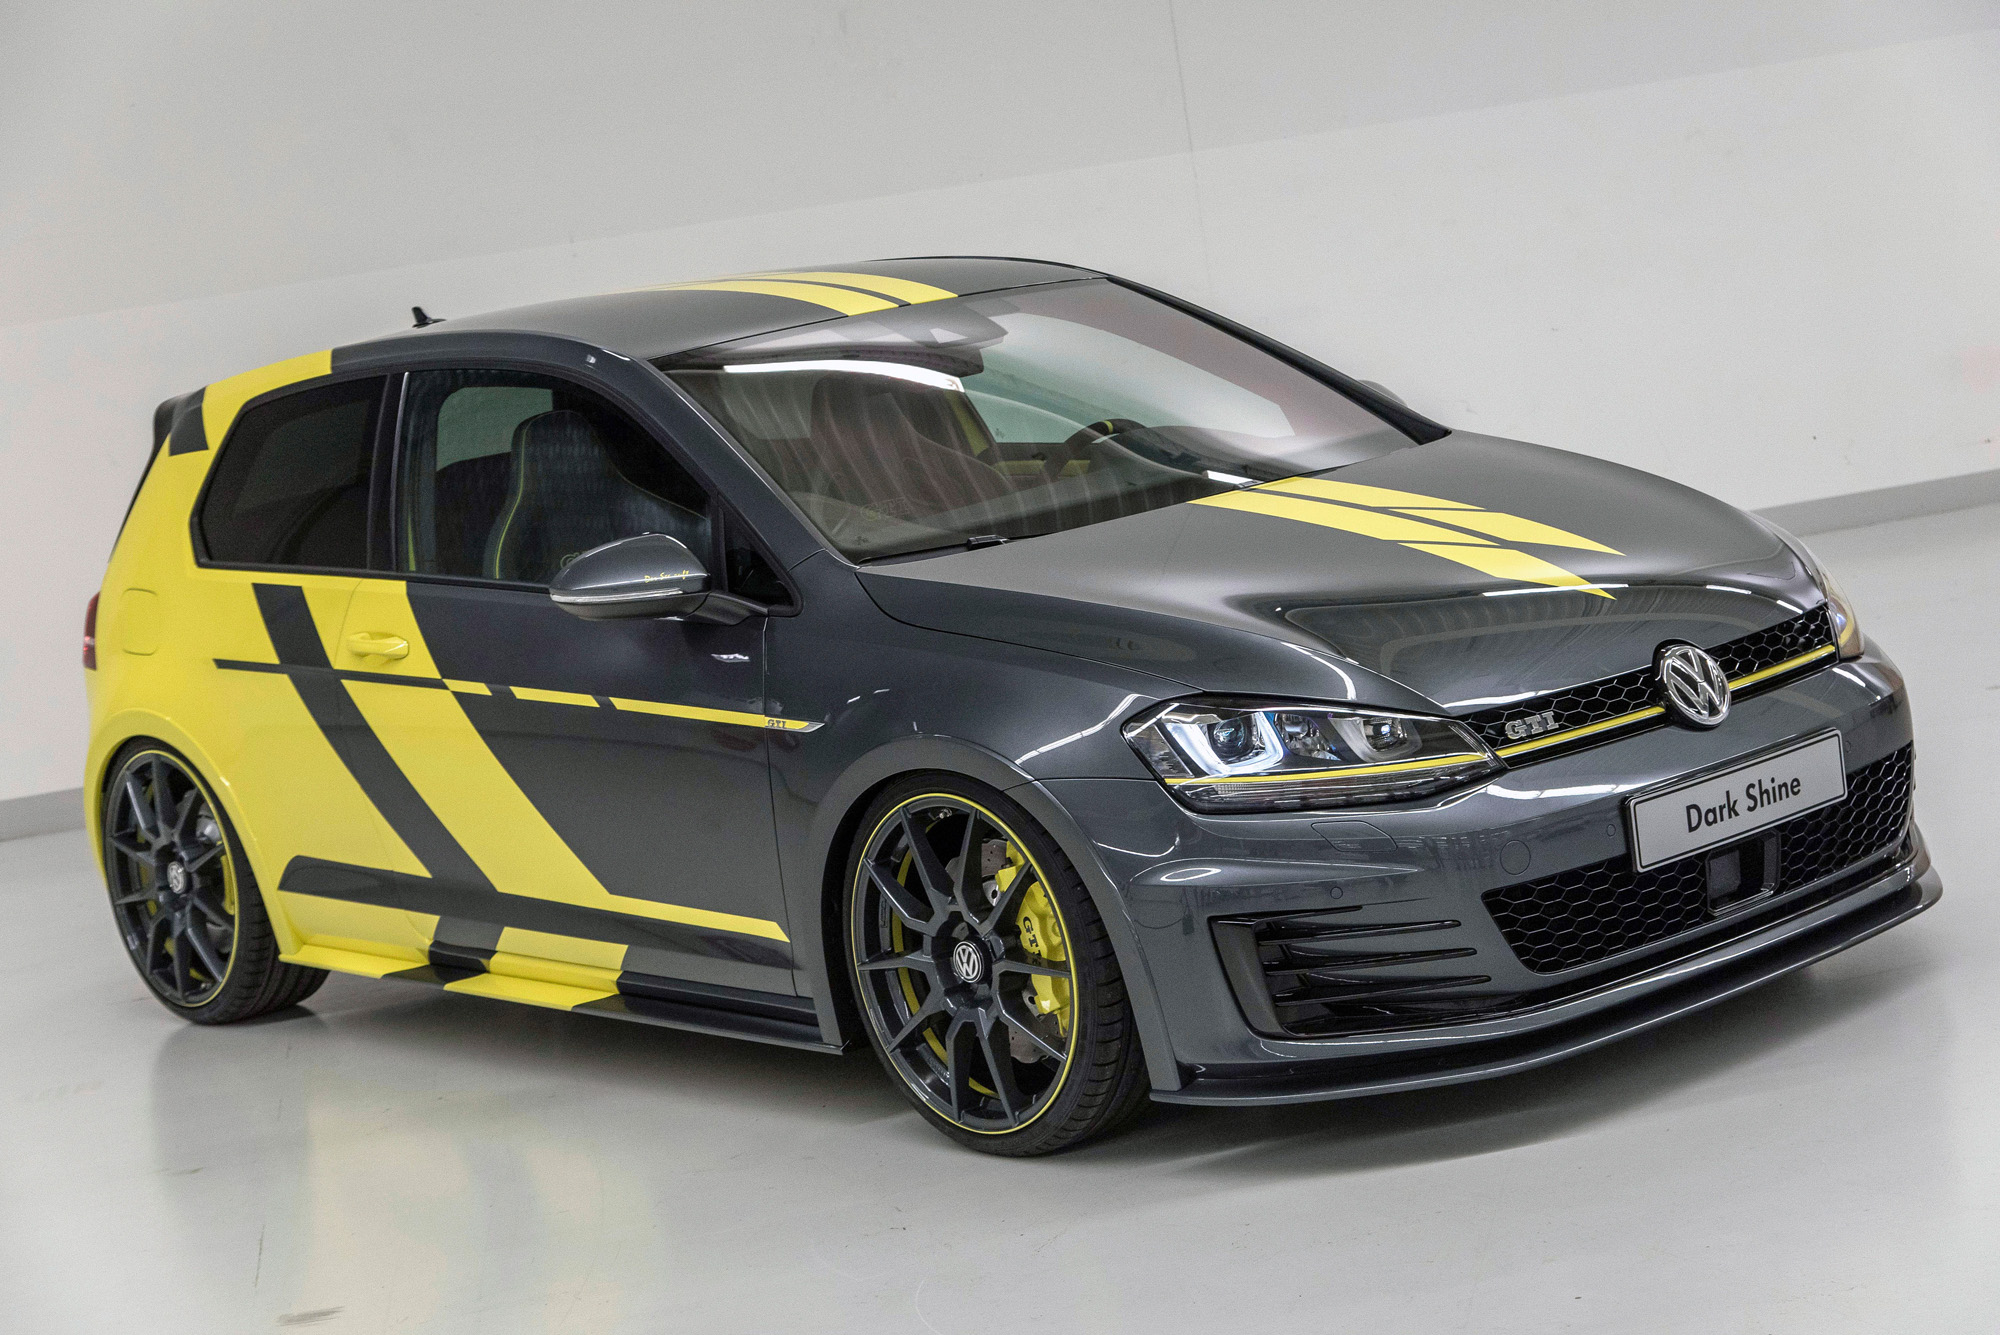 vw golf gti dark shine w rthersee projekt mit kontrastlook. Black Bedroom Furniture Sets. Home Design Ideas